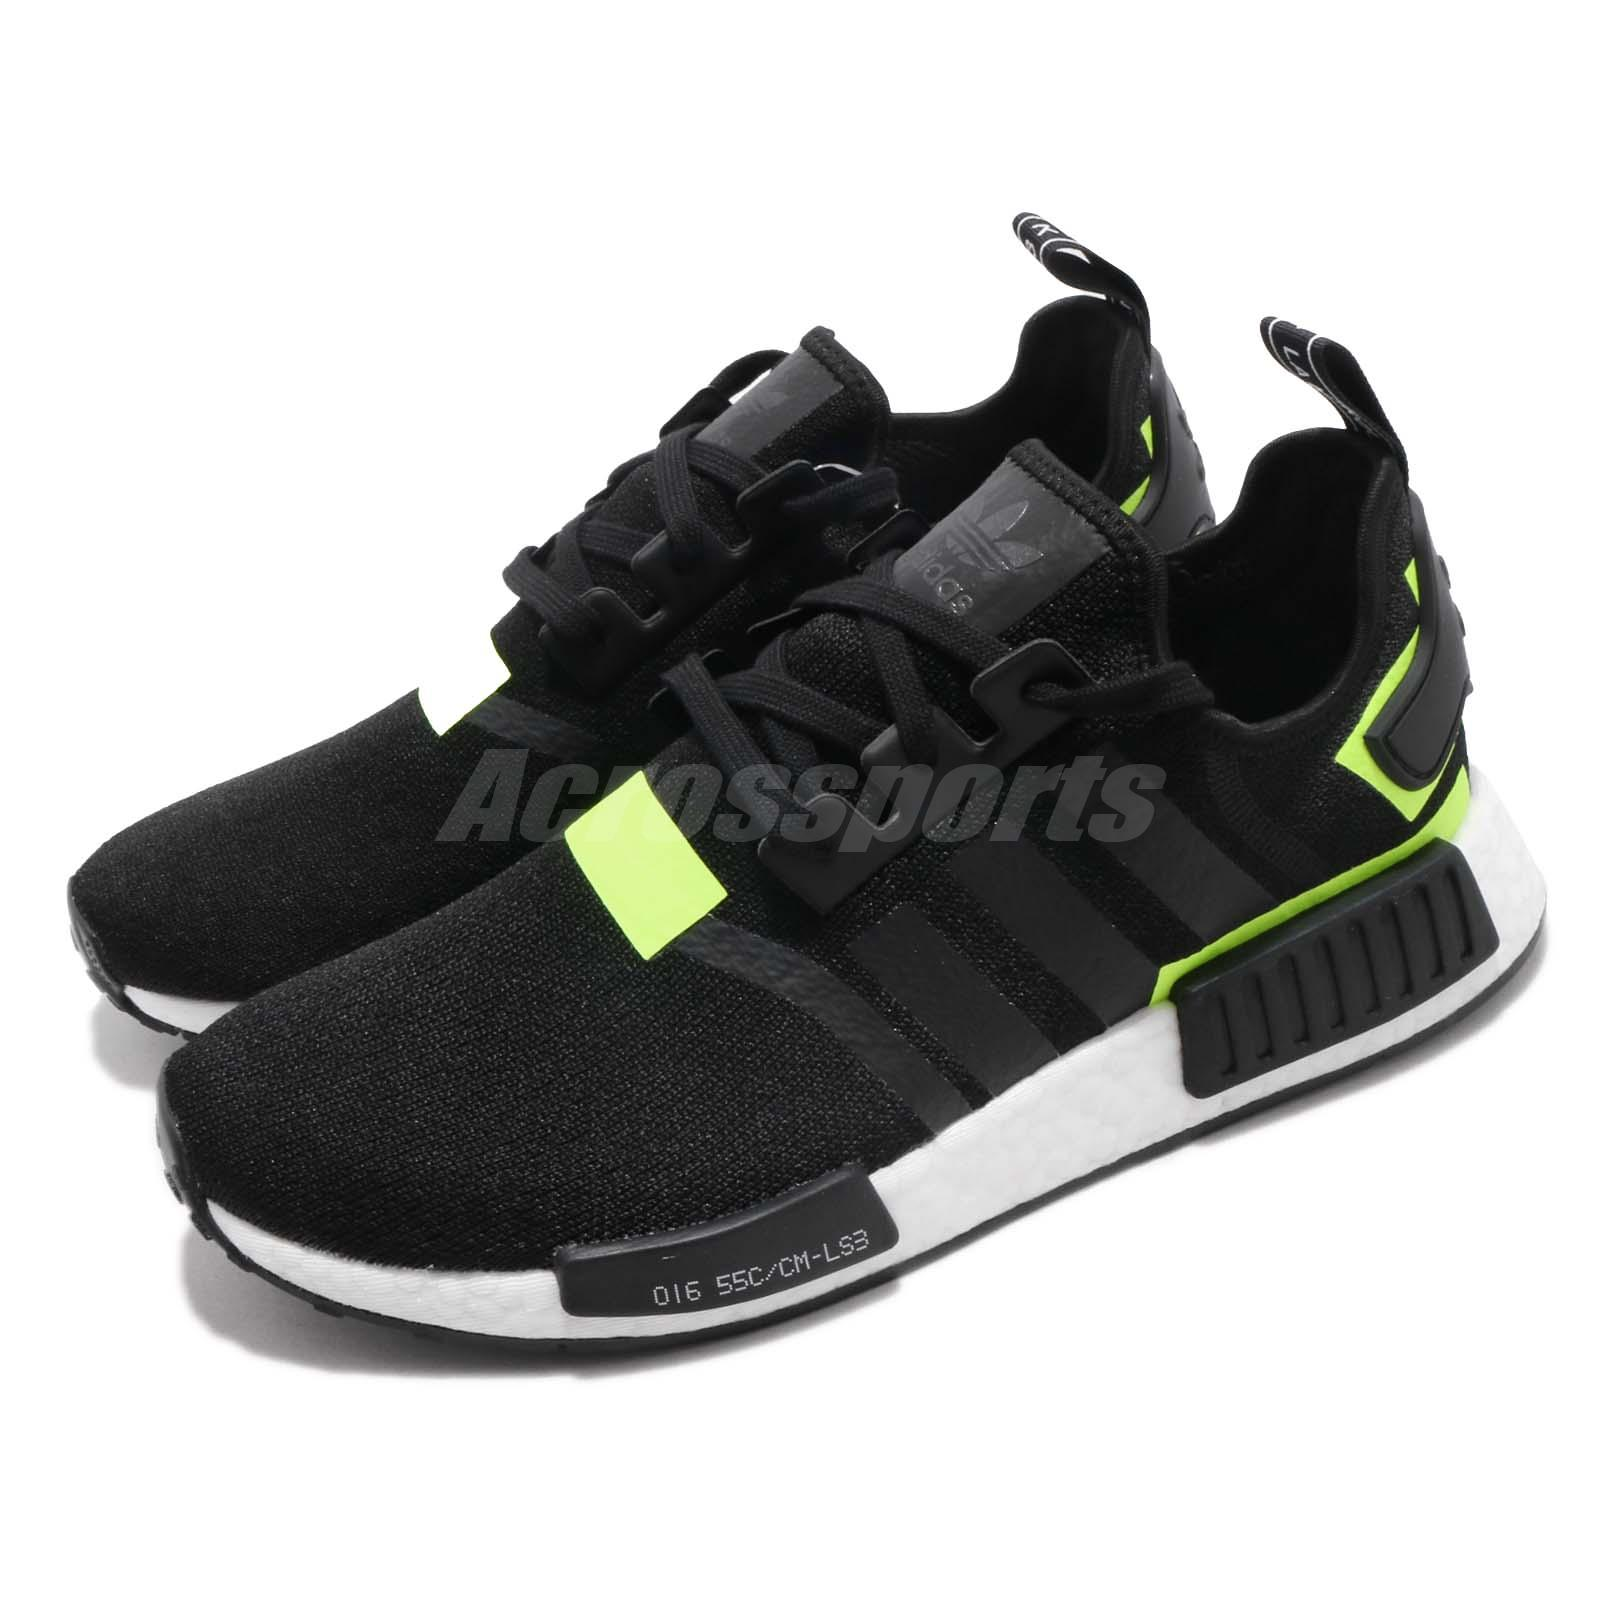 96109291e4243 Details about adidas Originals NMD R1 White Black Solar Men Running Shoes  Sneakers BD7751